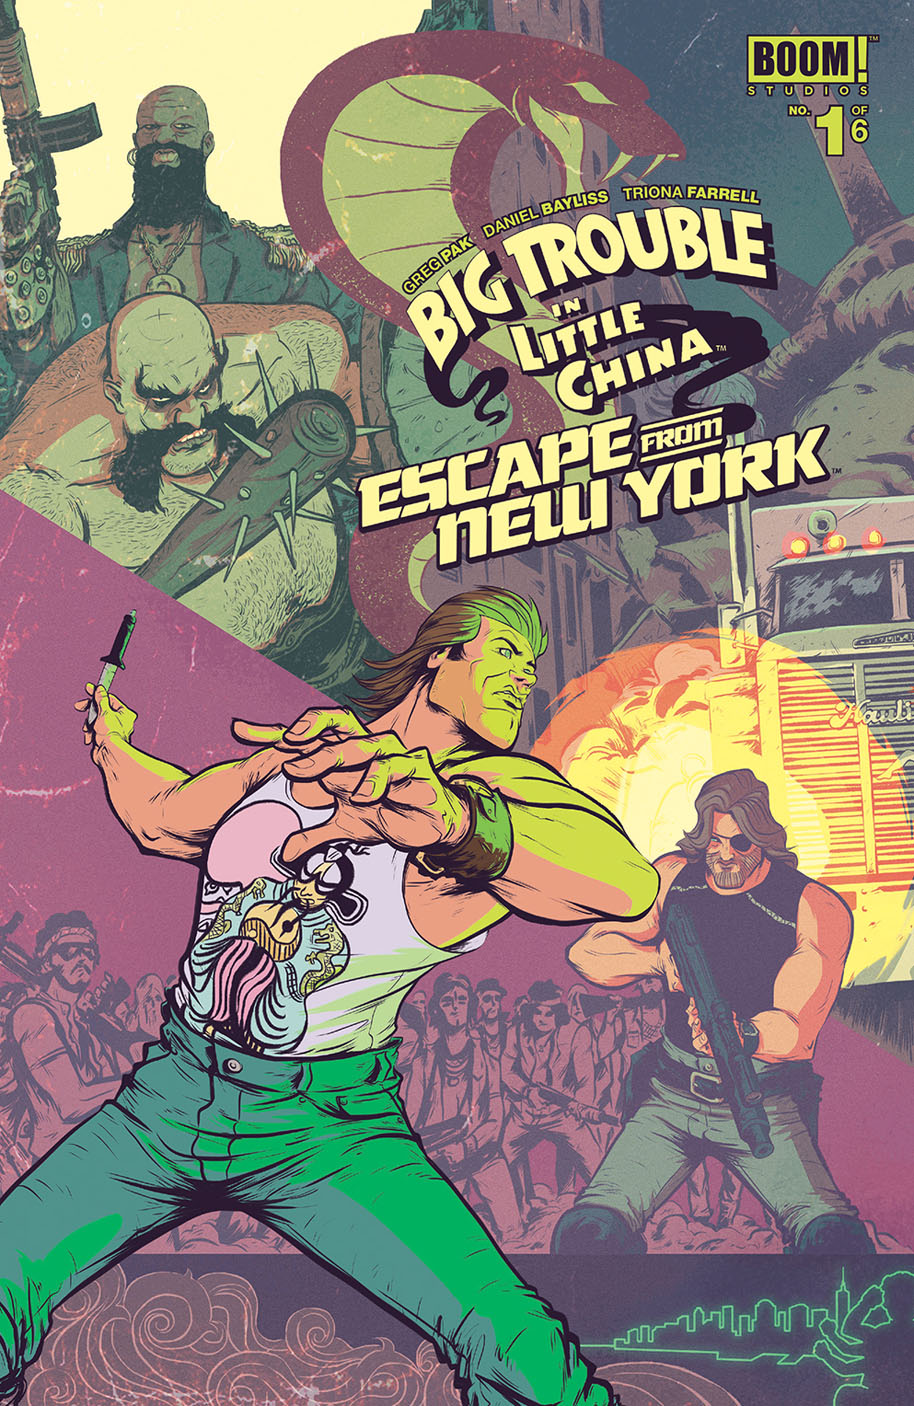 Big Trouble Escape NewYork 001 cover main 1